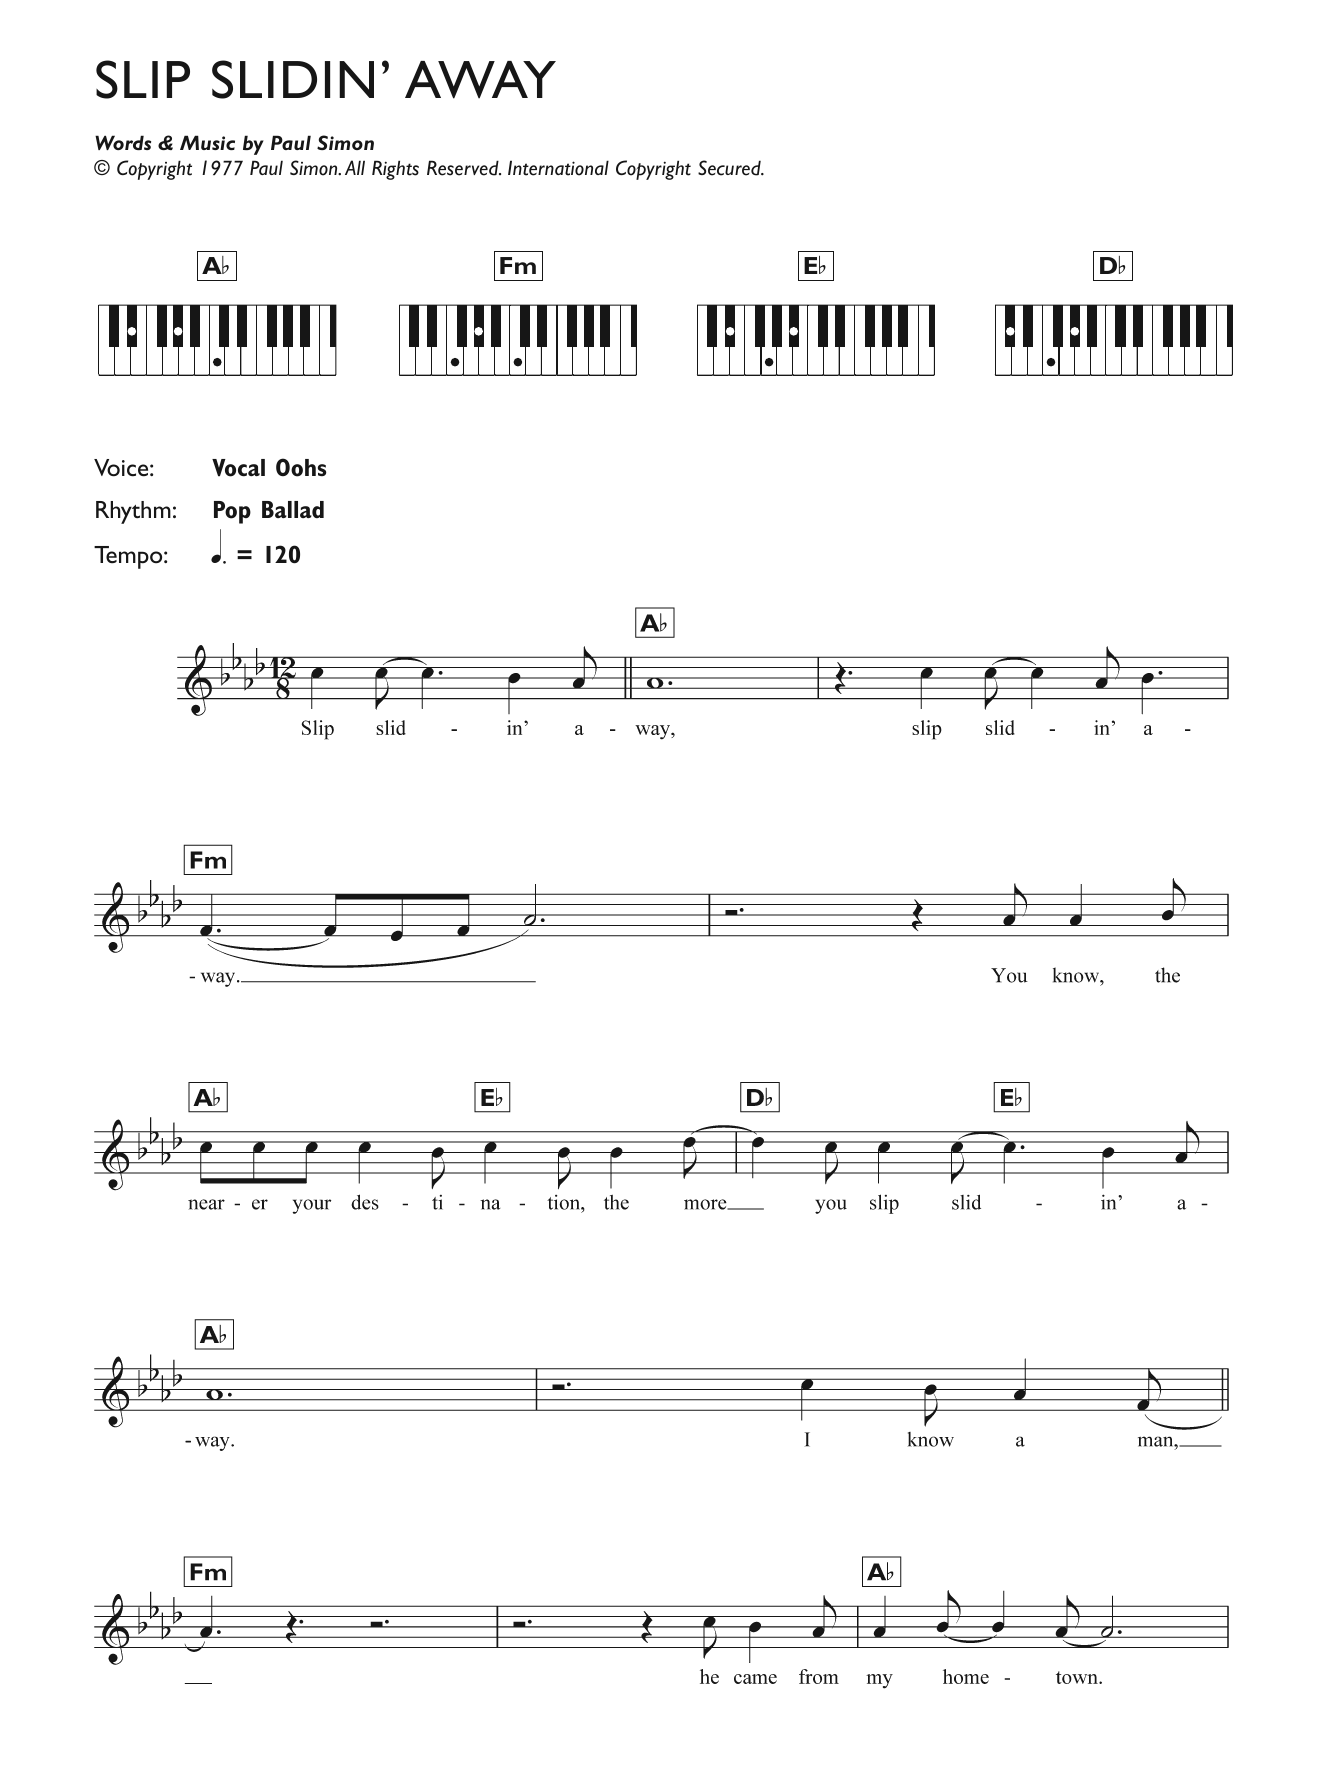 Slip Slidin' Away Sheet Music